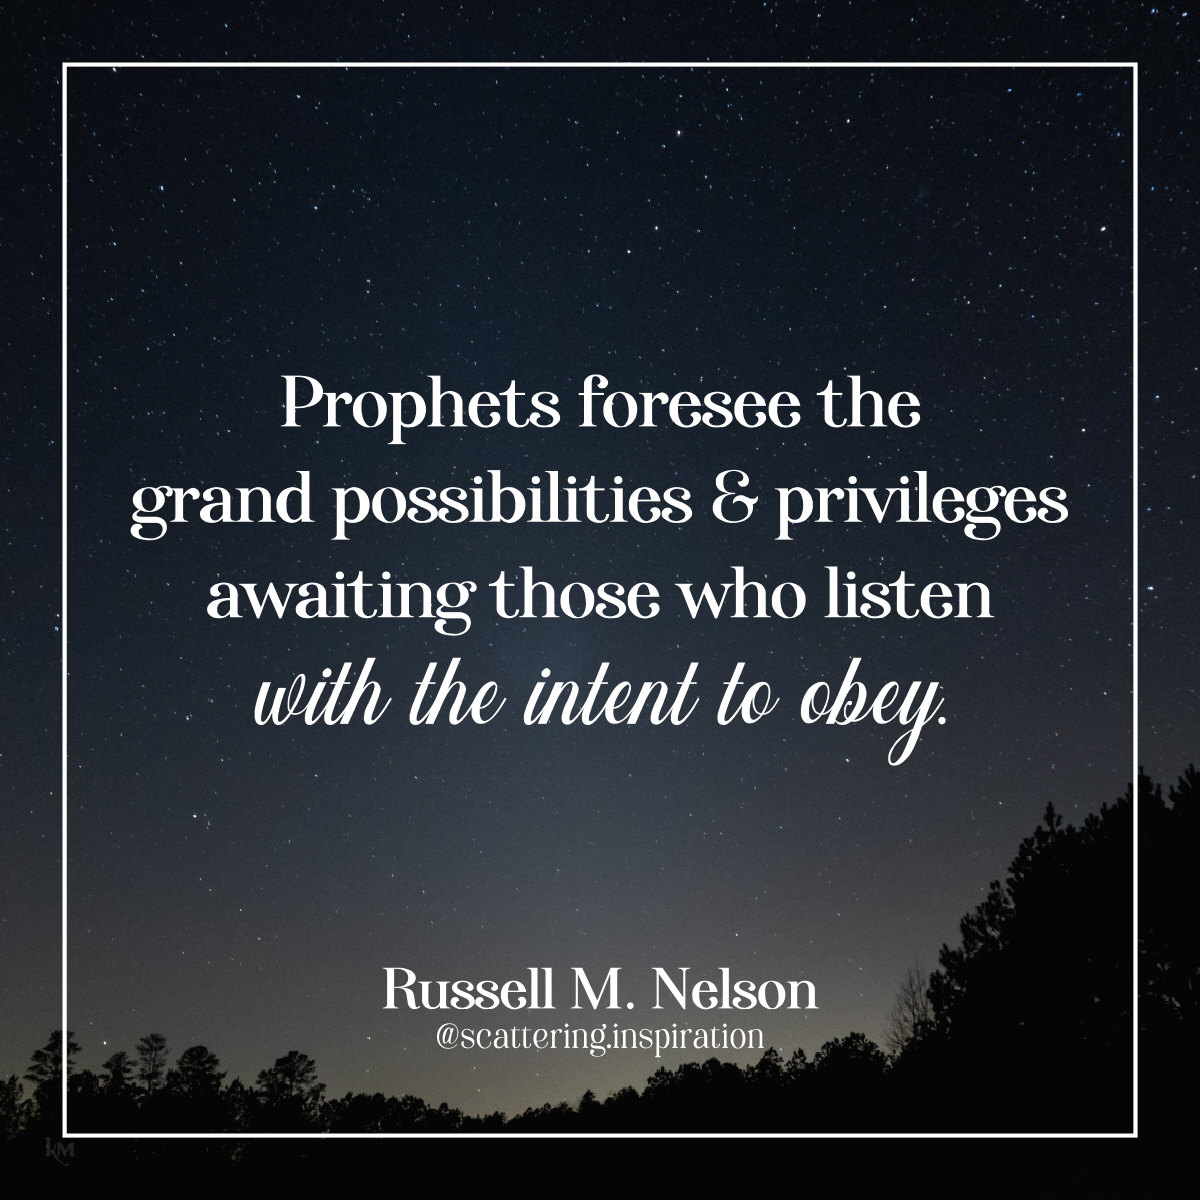 prophets foresee